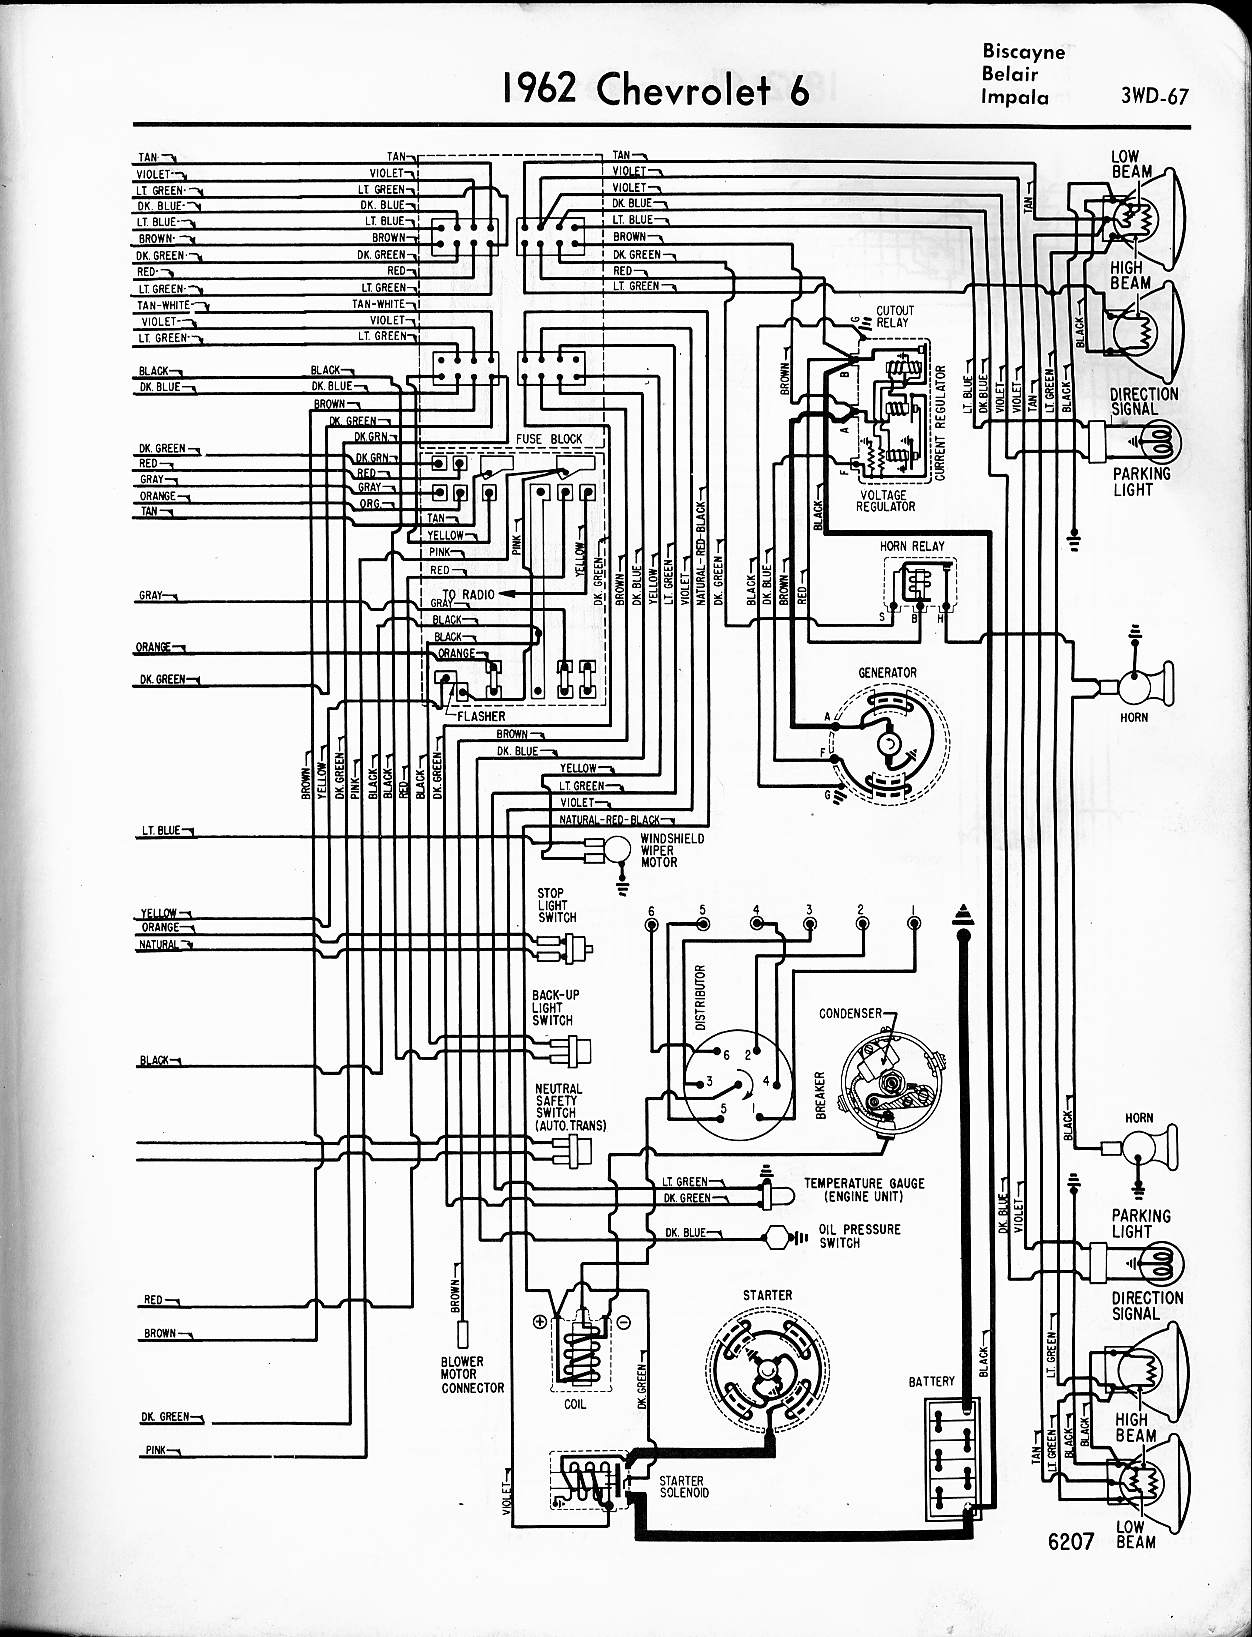 chevy impala wiring diagram on 1962 chevy belair wiring diagram free